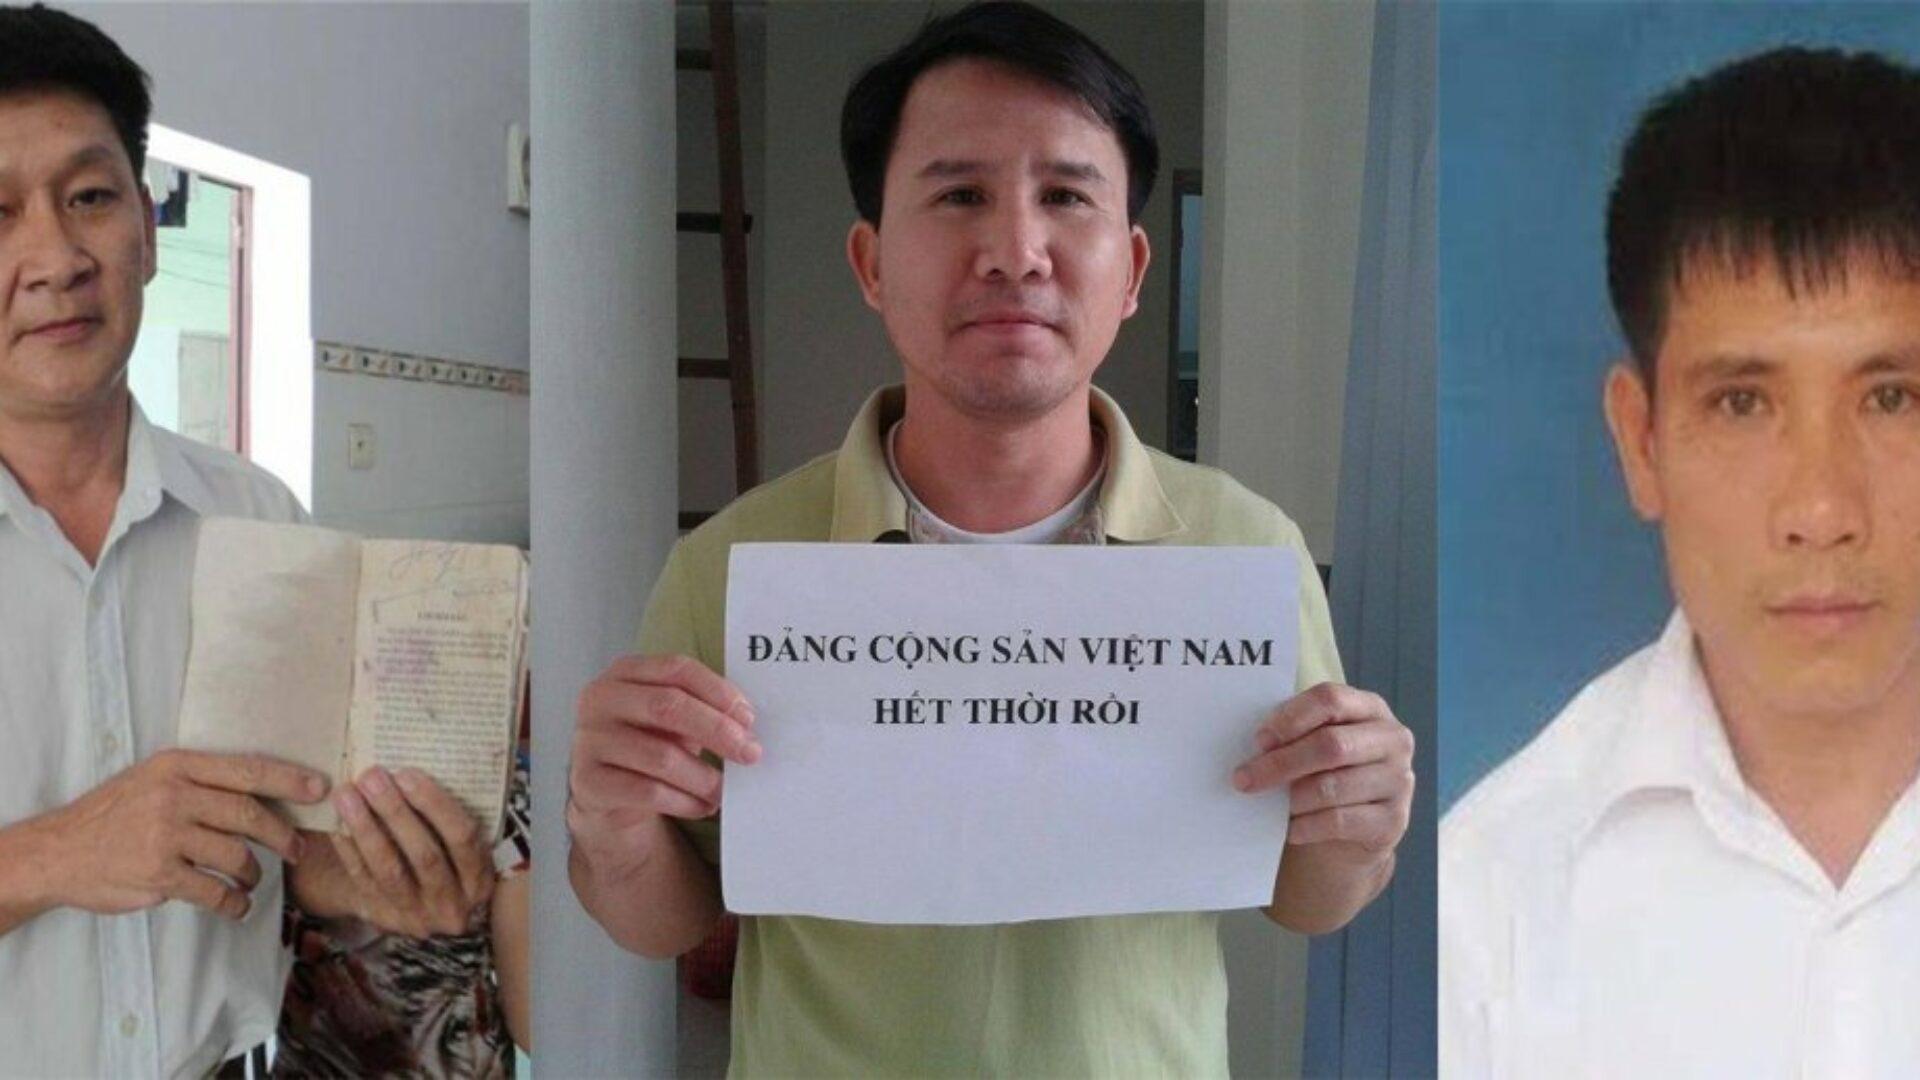 Amnesty International: Viet Nam: activists held incommunicado may face life in prison